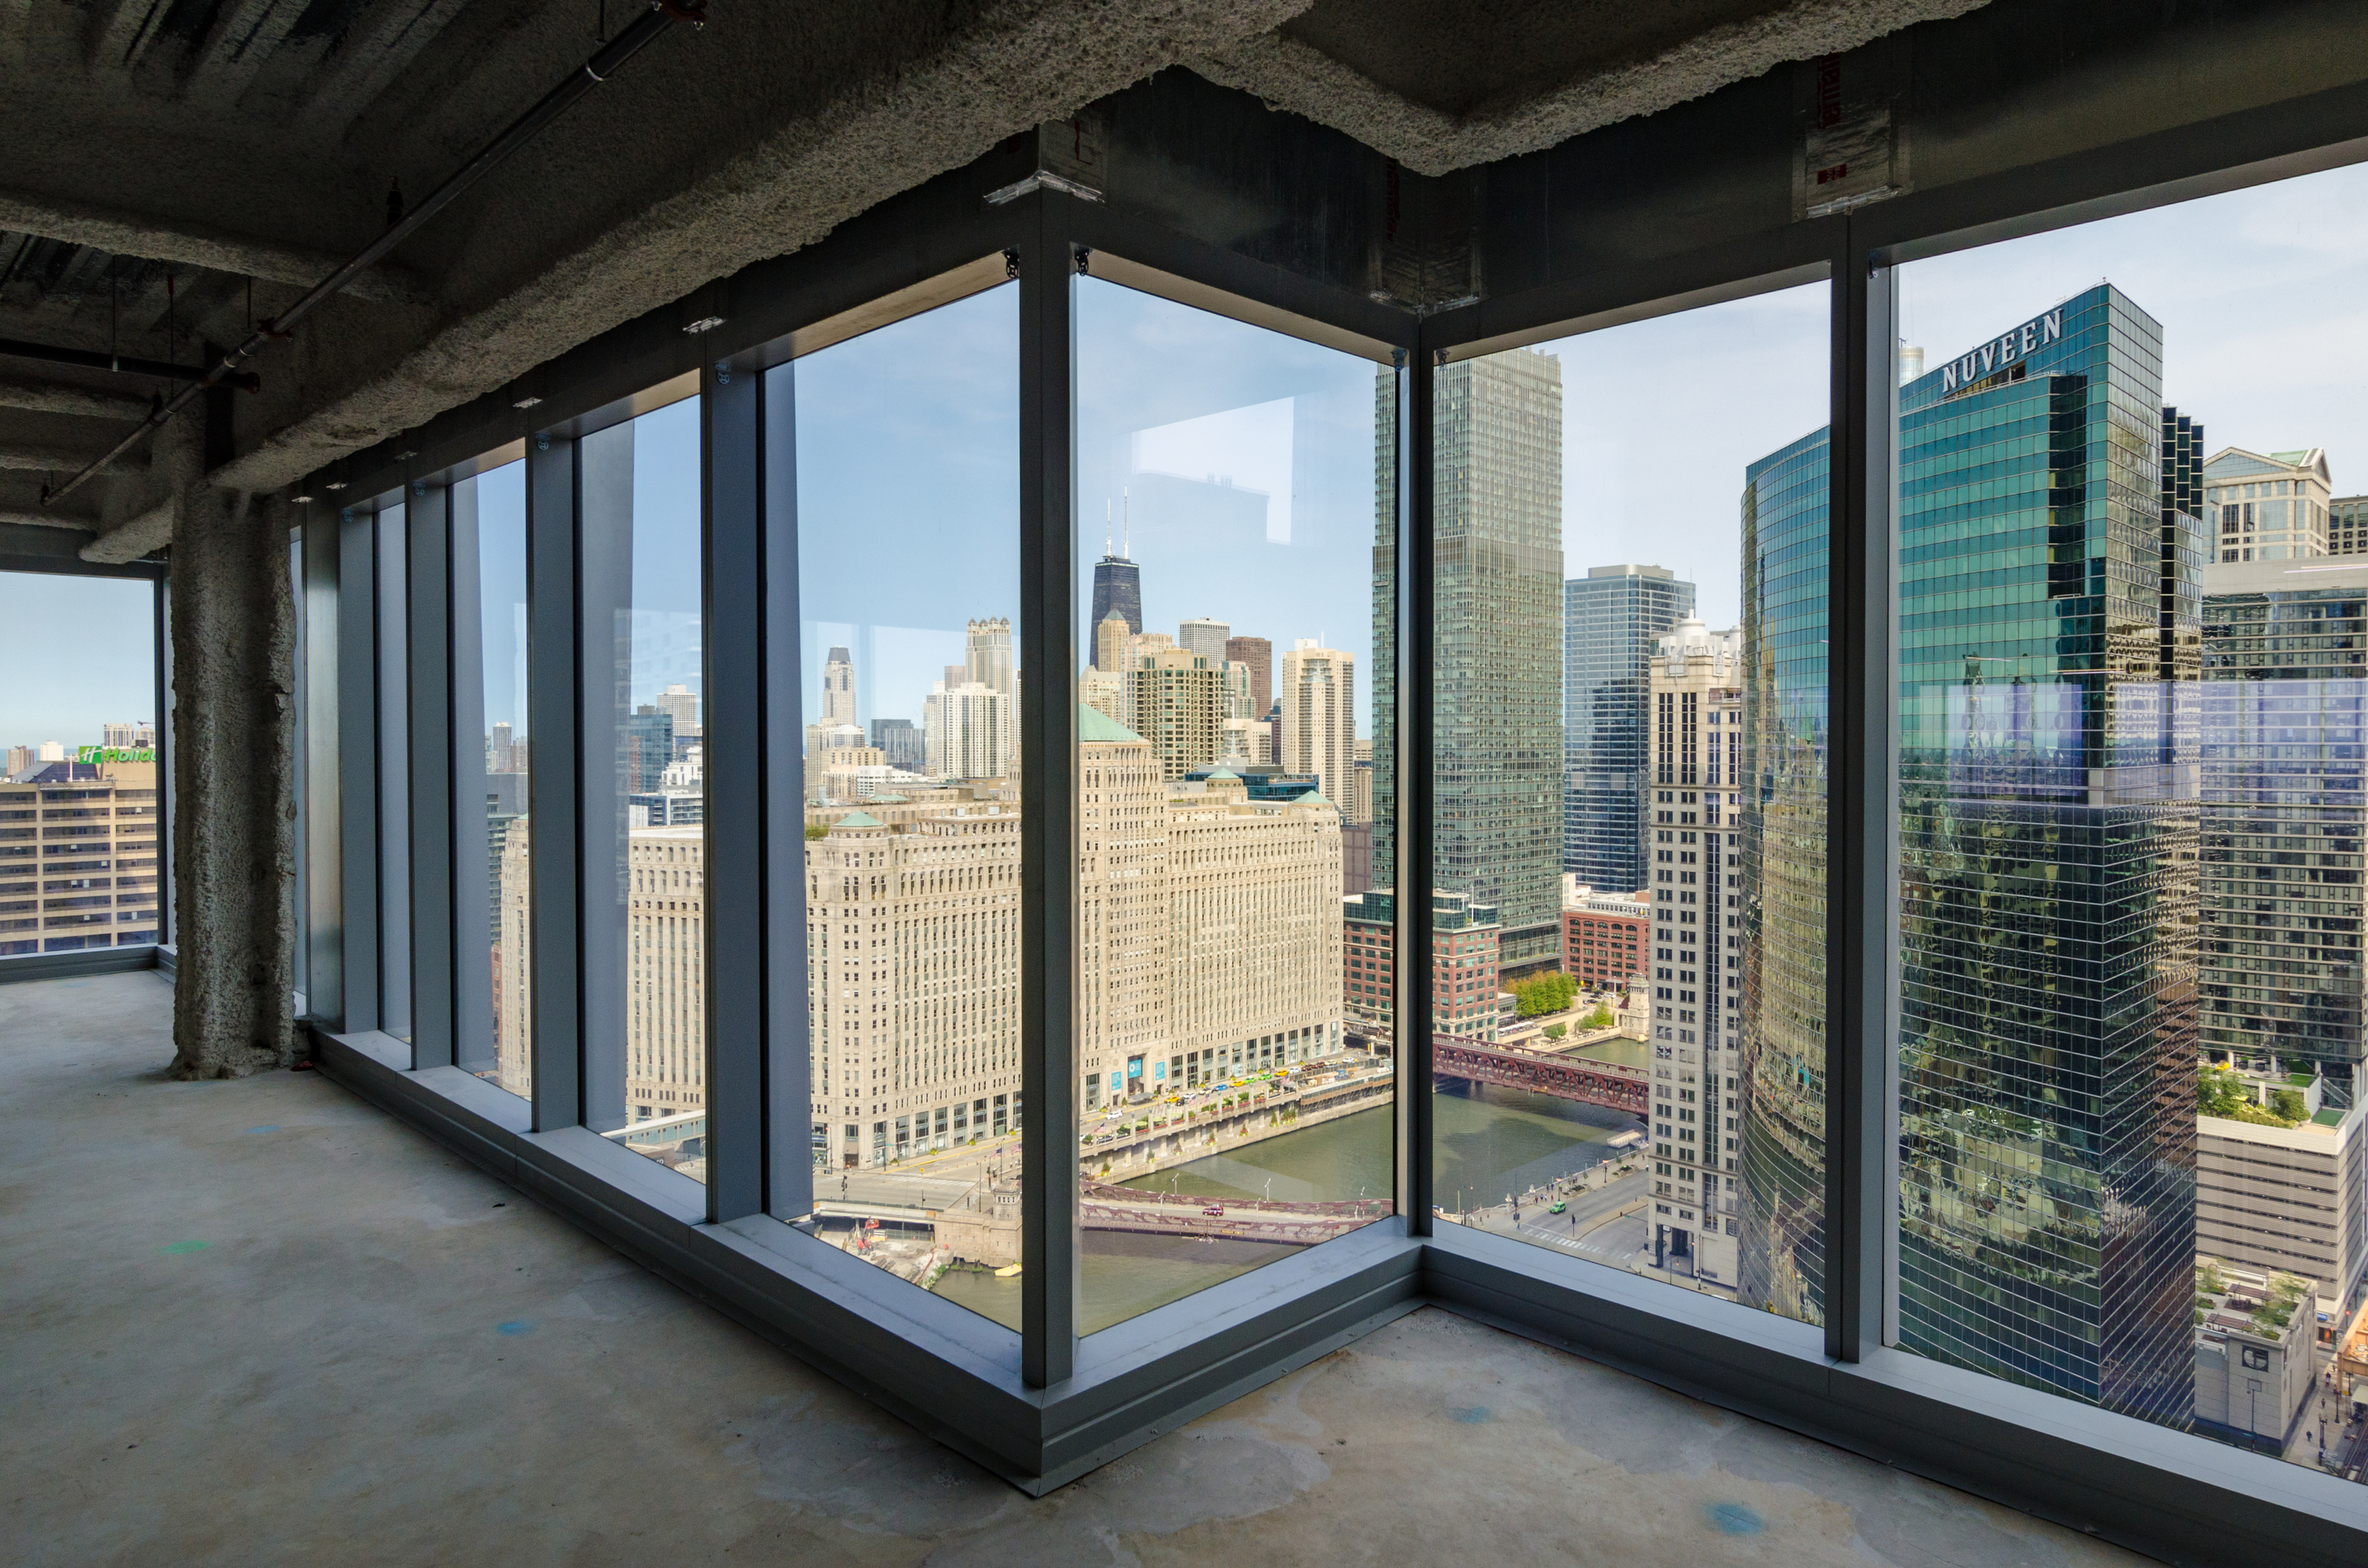 One of Chicago's newest skyscrapers joins Open House